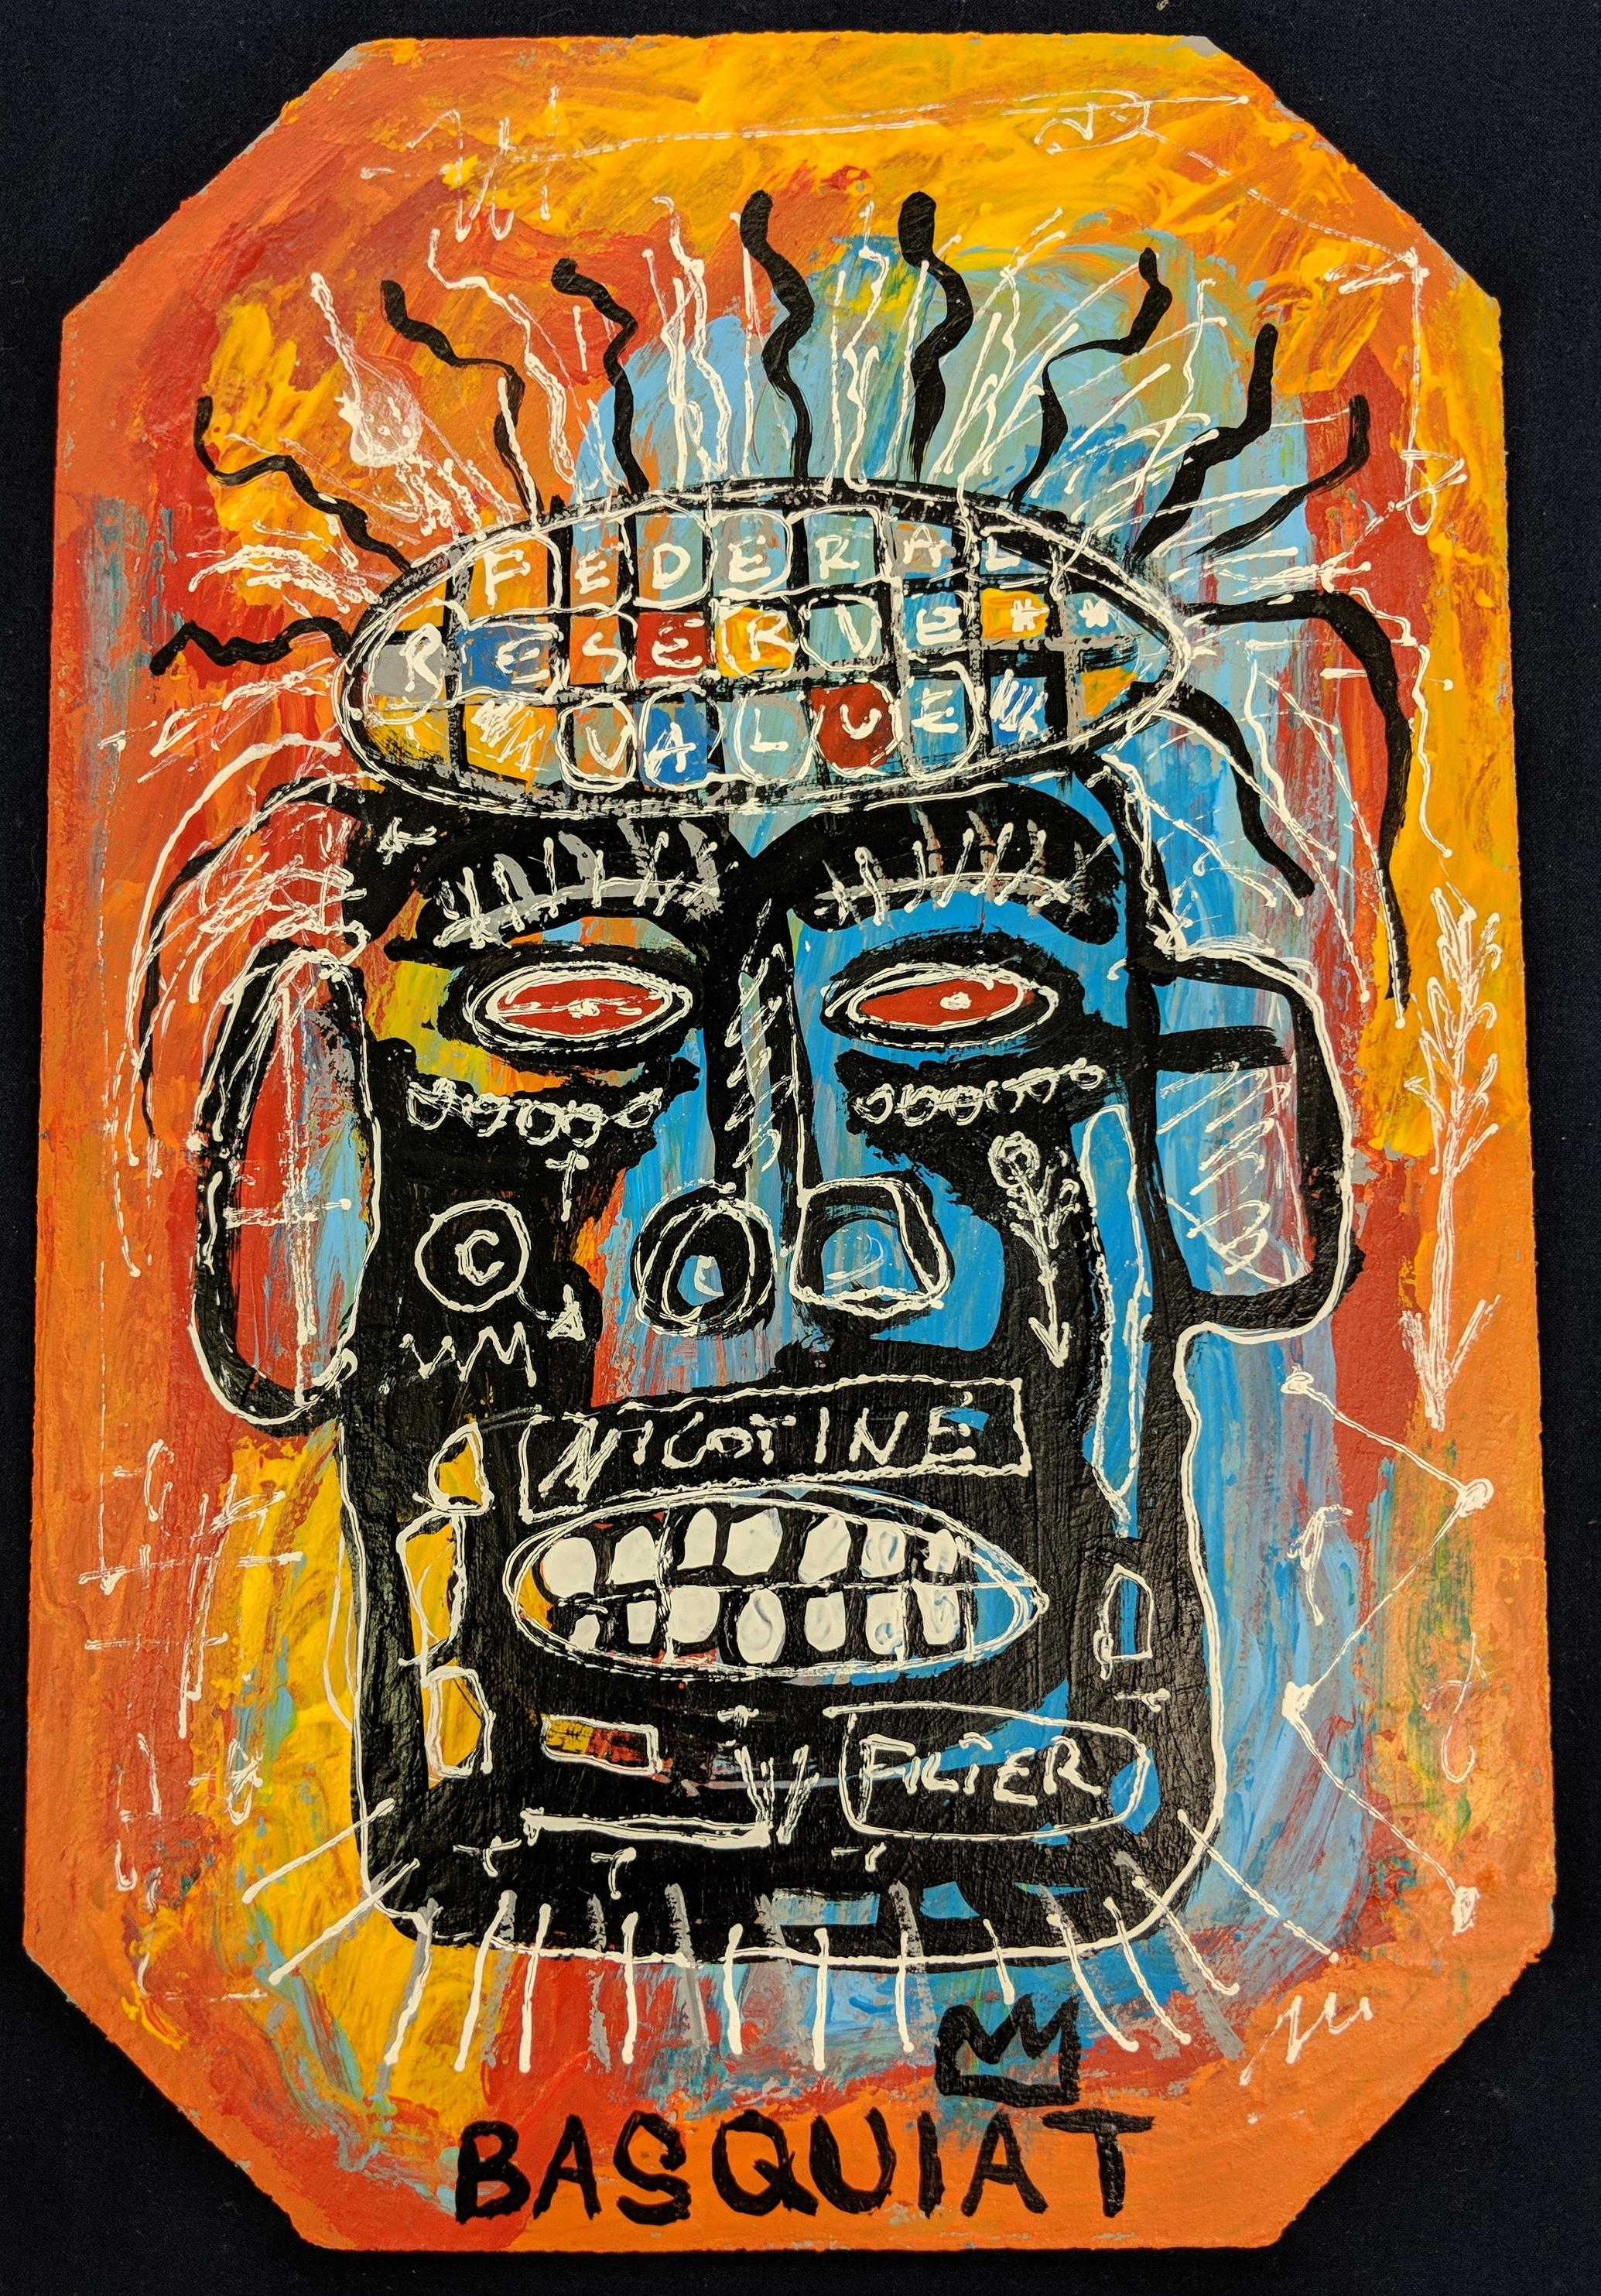 Large Postcard Artwork in the Style of Jean Michel Basquiat